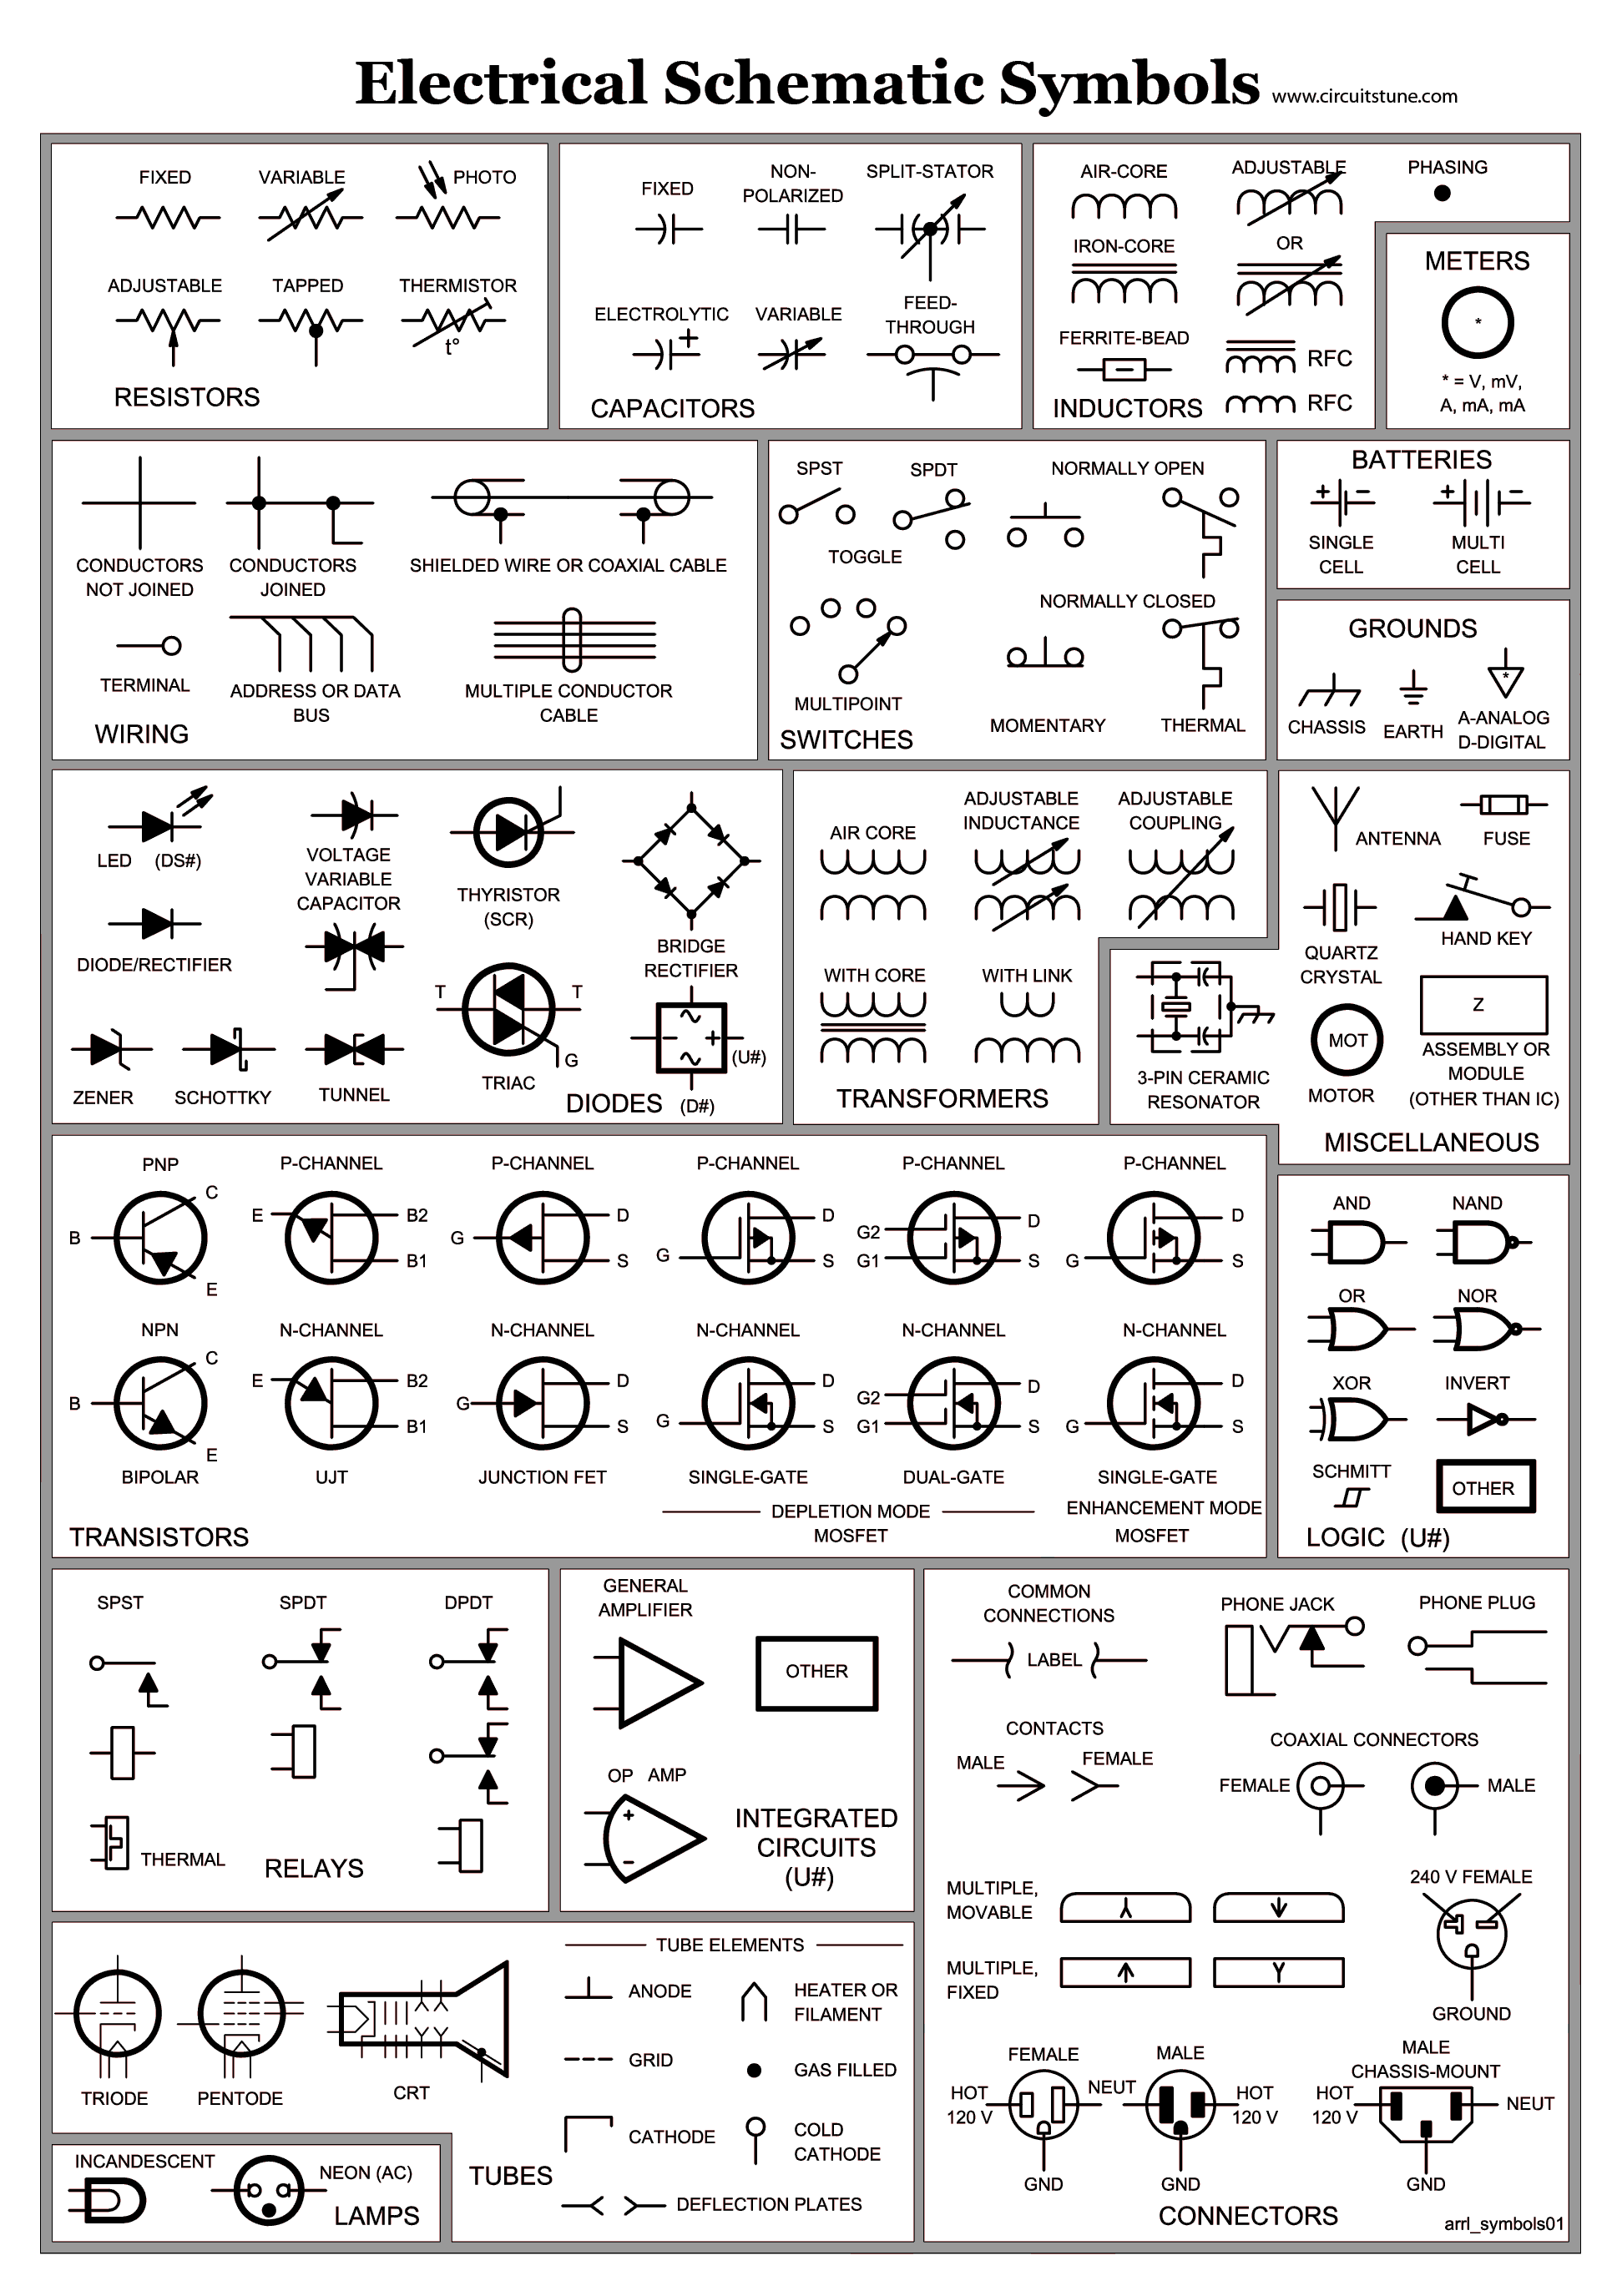 Electrical Schematic Symbols | SkinSquiggles in 2019 ... on